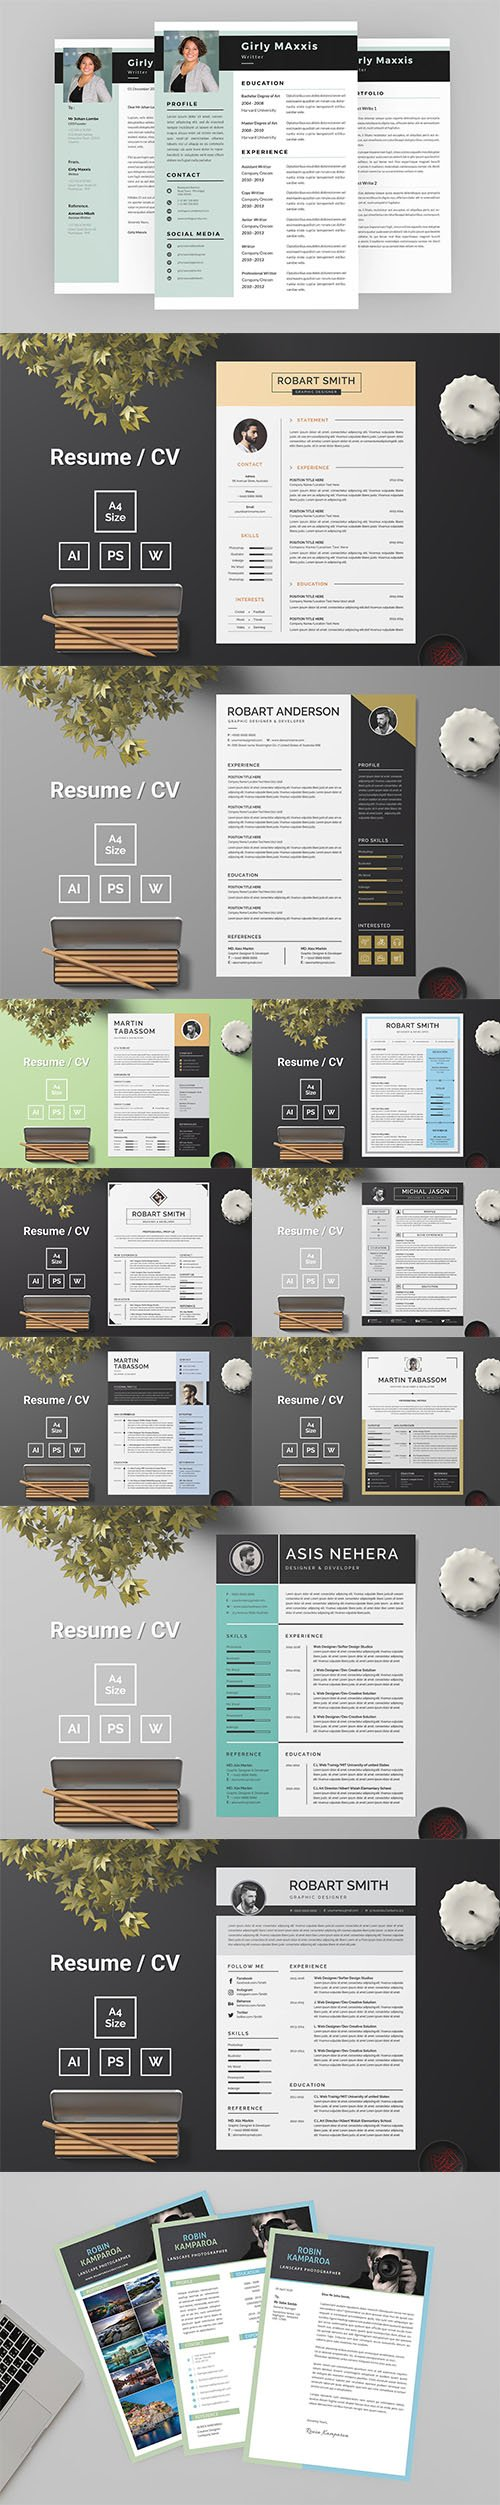 CV & Resume Template PSD and AI Pack Vol2